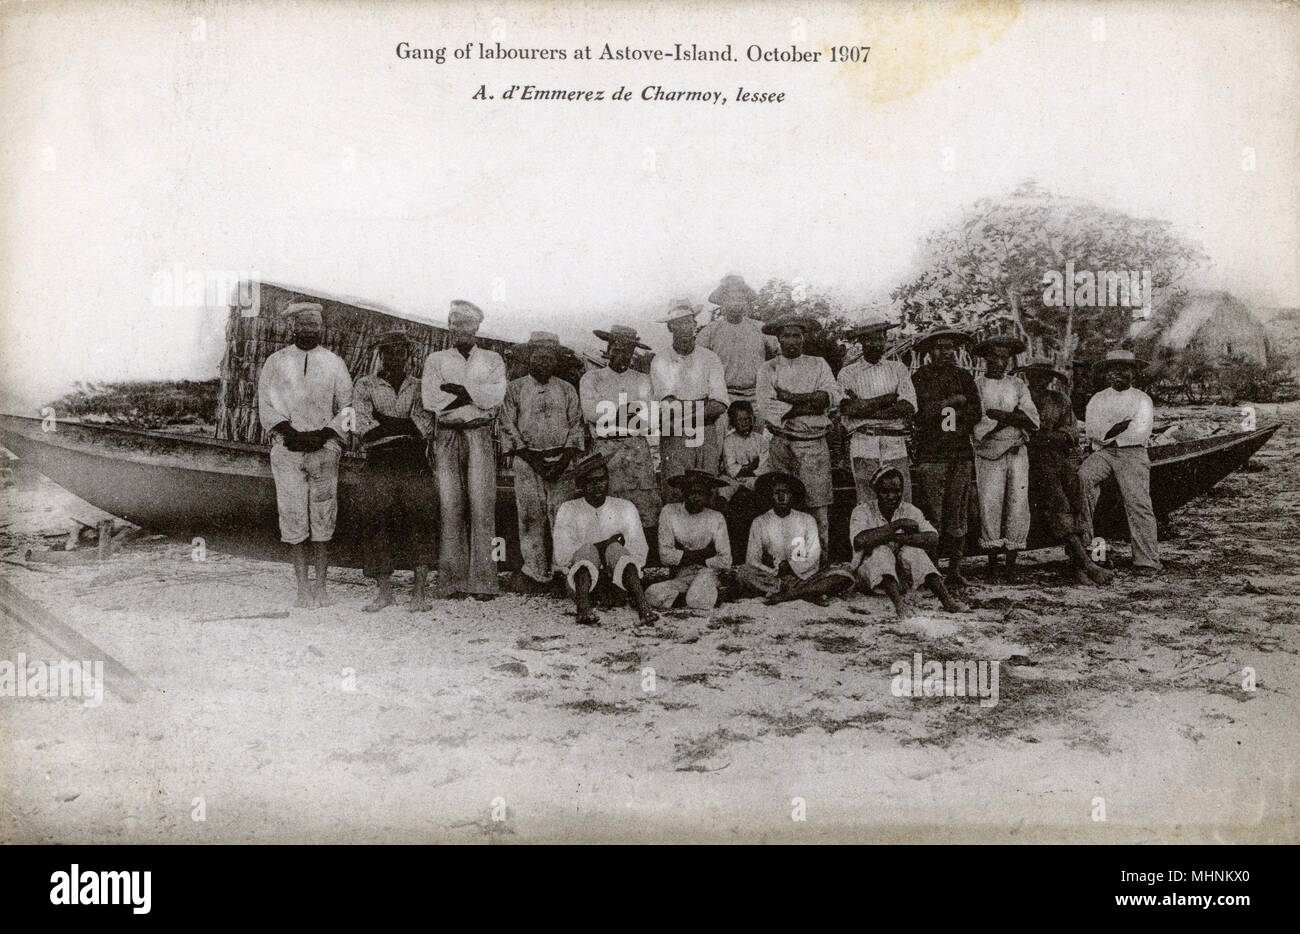 Gang of Labourers - Astove Island, part of the Cosmoledo Group, part of the Outer Islands of the Seychelles, lying in the southwest of the island nation, 1,000 kilometres (620 miles) from Mahe Island. The whole island appears to have been turned over to the harvesting and drying of mangrove bark.      Date: 1907 - Stock Image